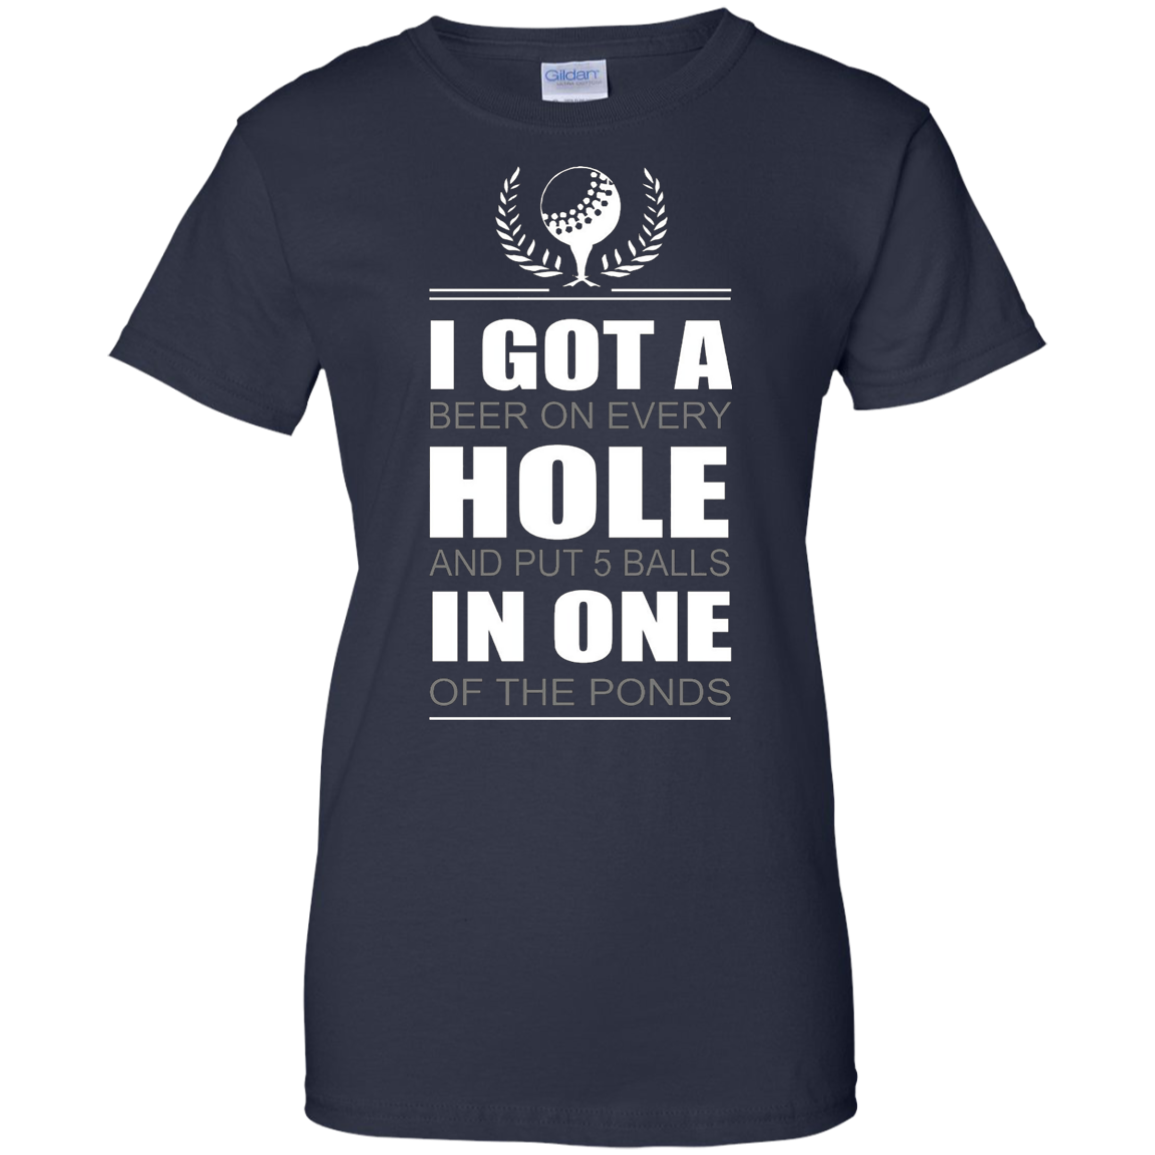 FUNNY GOLF HOLE IN ONE T SHIRT Golf Beer Pond